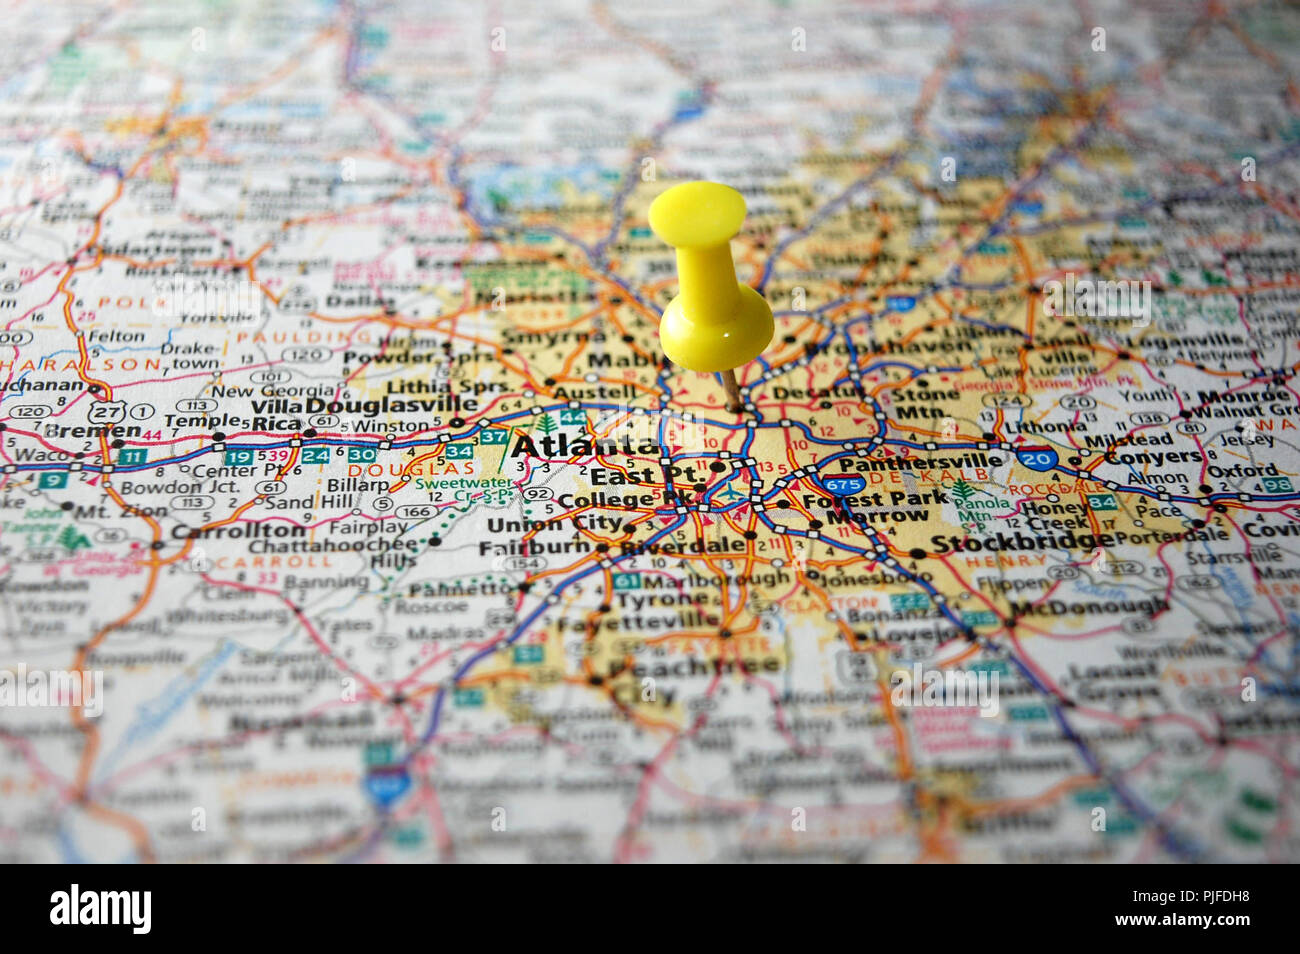 A Map Of Atlanta Georgia.A Map Of Atlanta Georgia Marked With A Push Pin Stock Photo